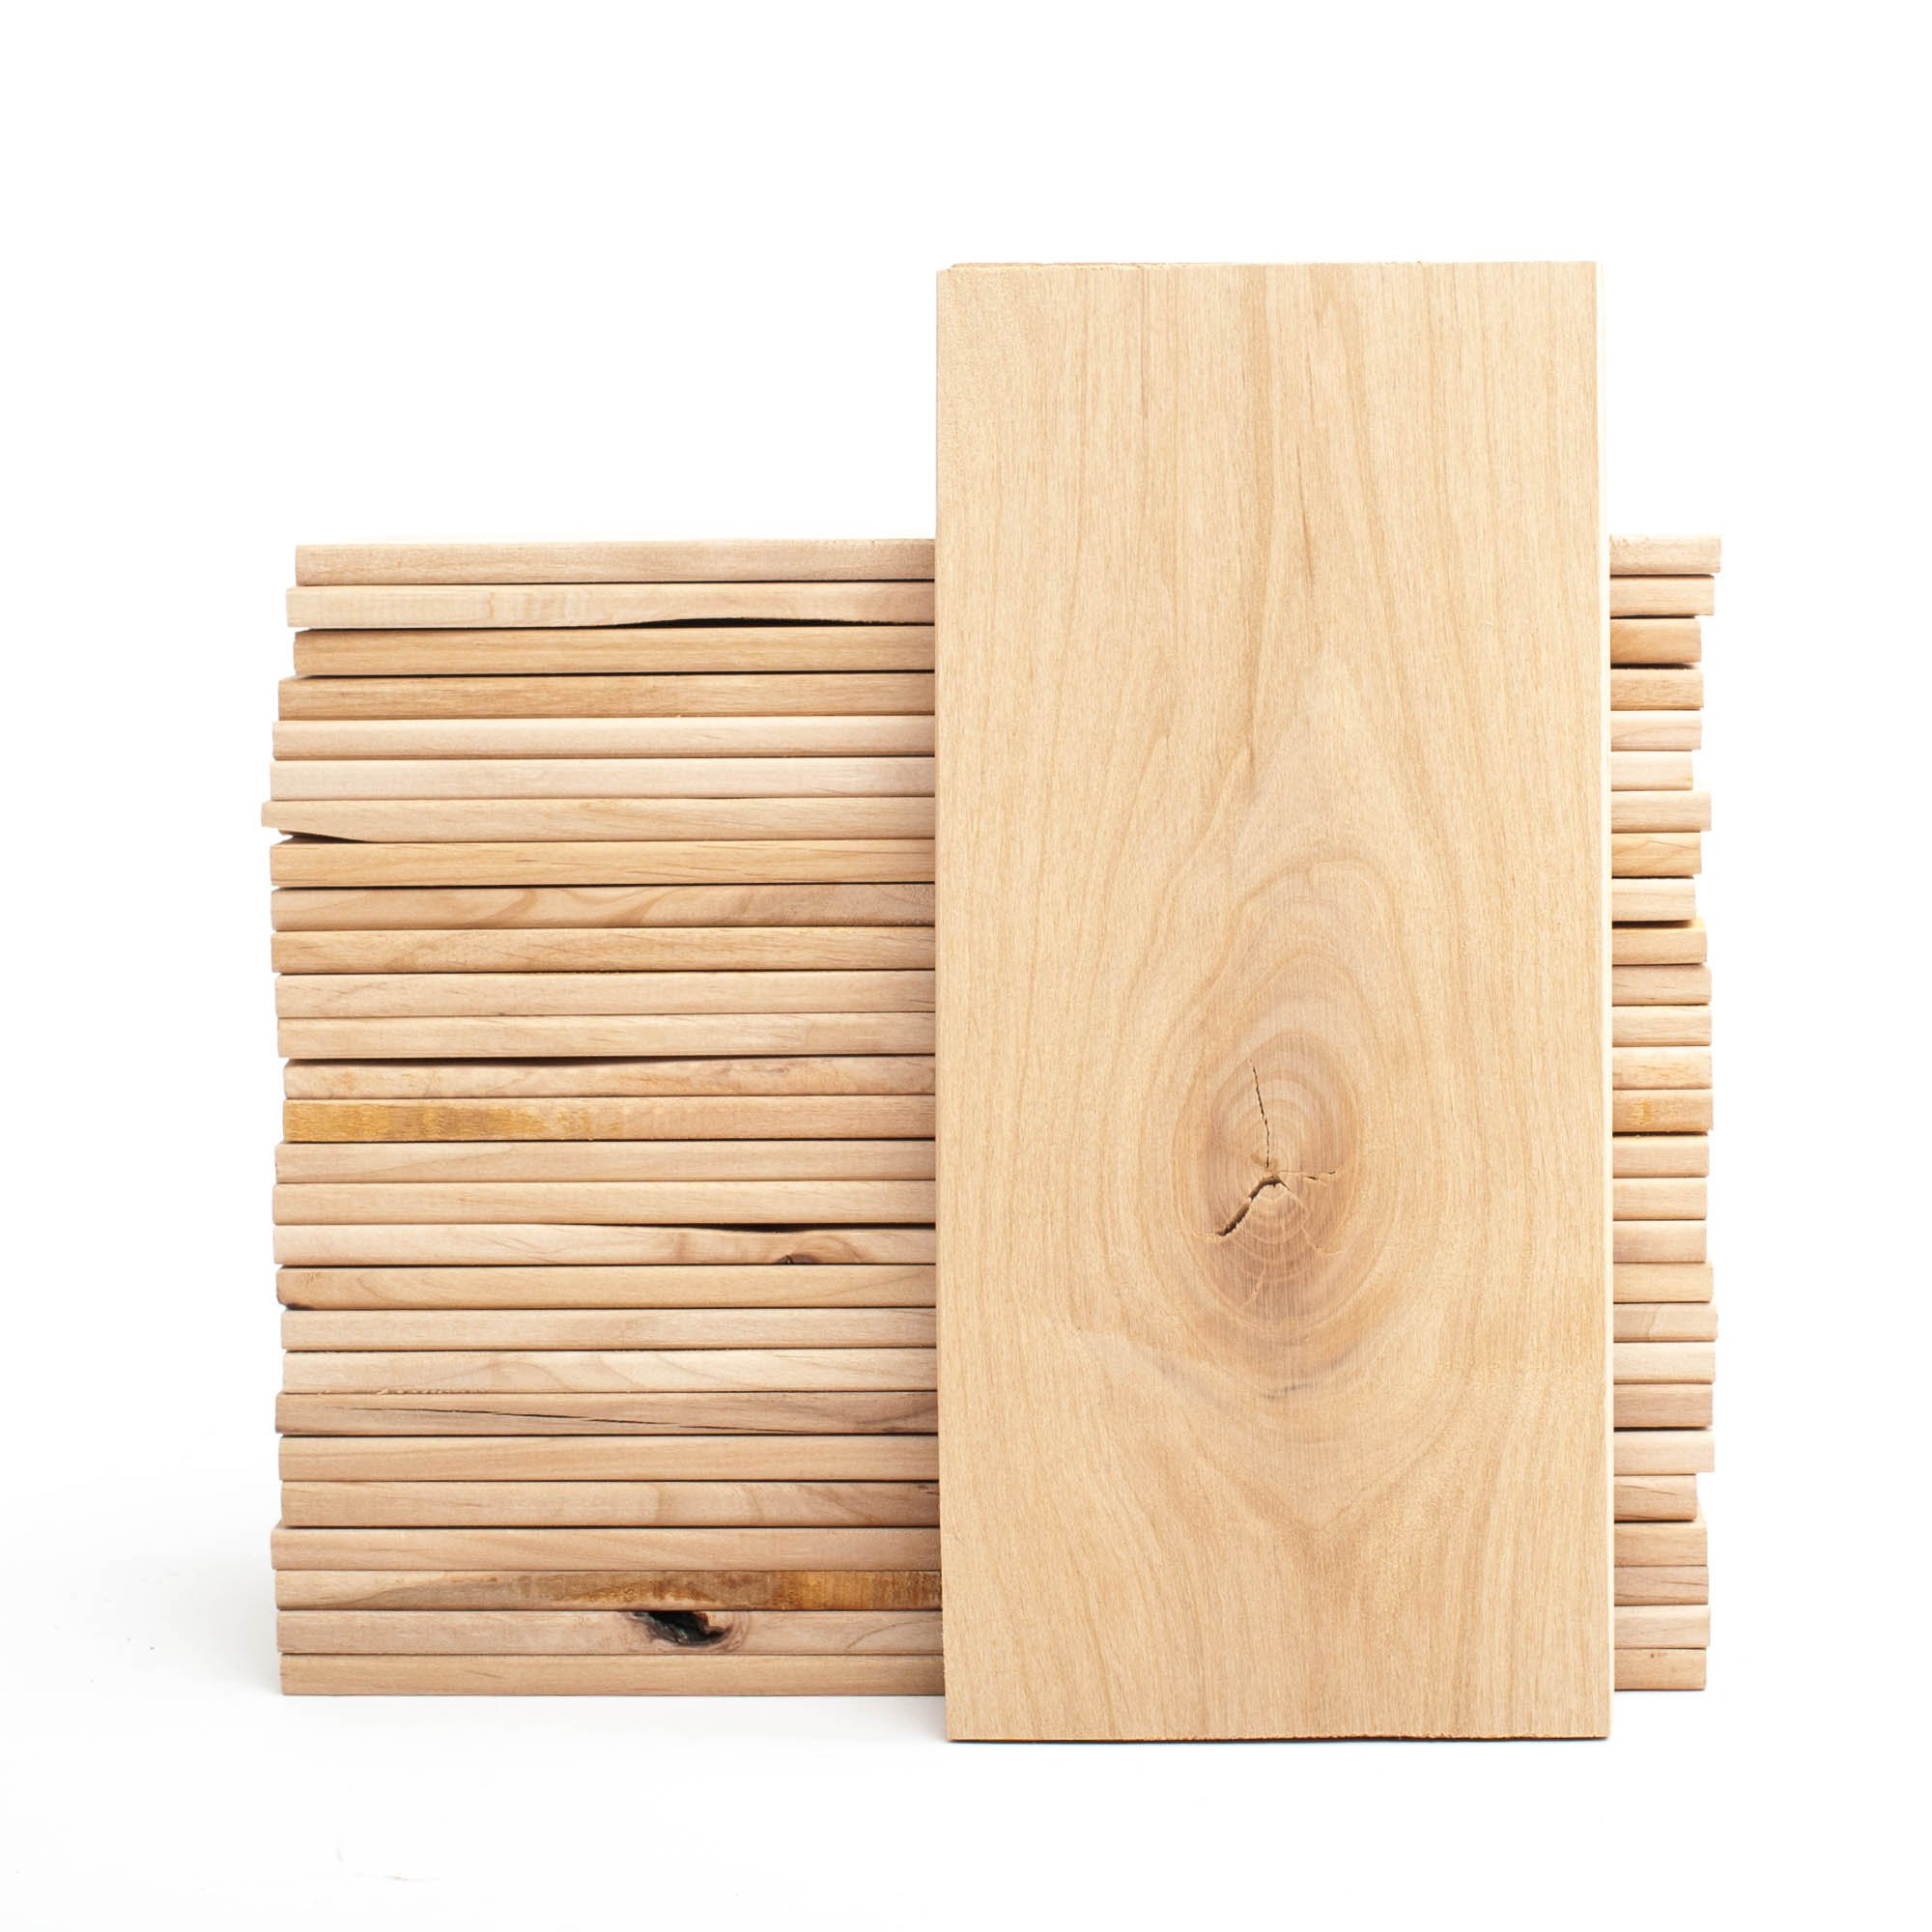 Alder Grilling Planks 30-Pack for Cooking White Fish, Vegetables, Pork & Chicken - Size for 2-4 Servings (5''x11'') - Pacific Alder by Wood Fire Grilling Co. (Image #2)